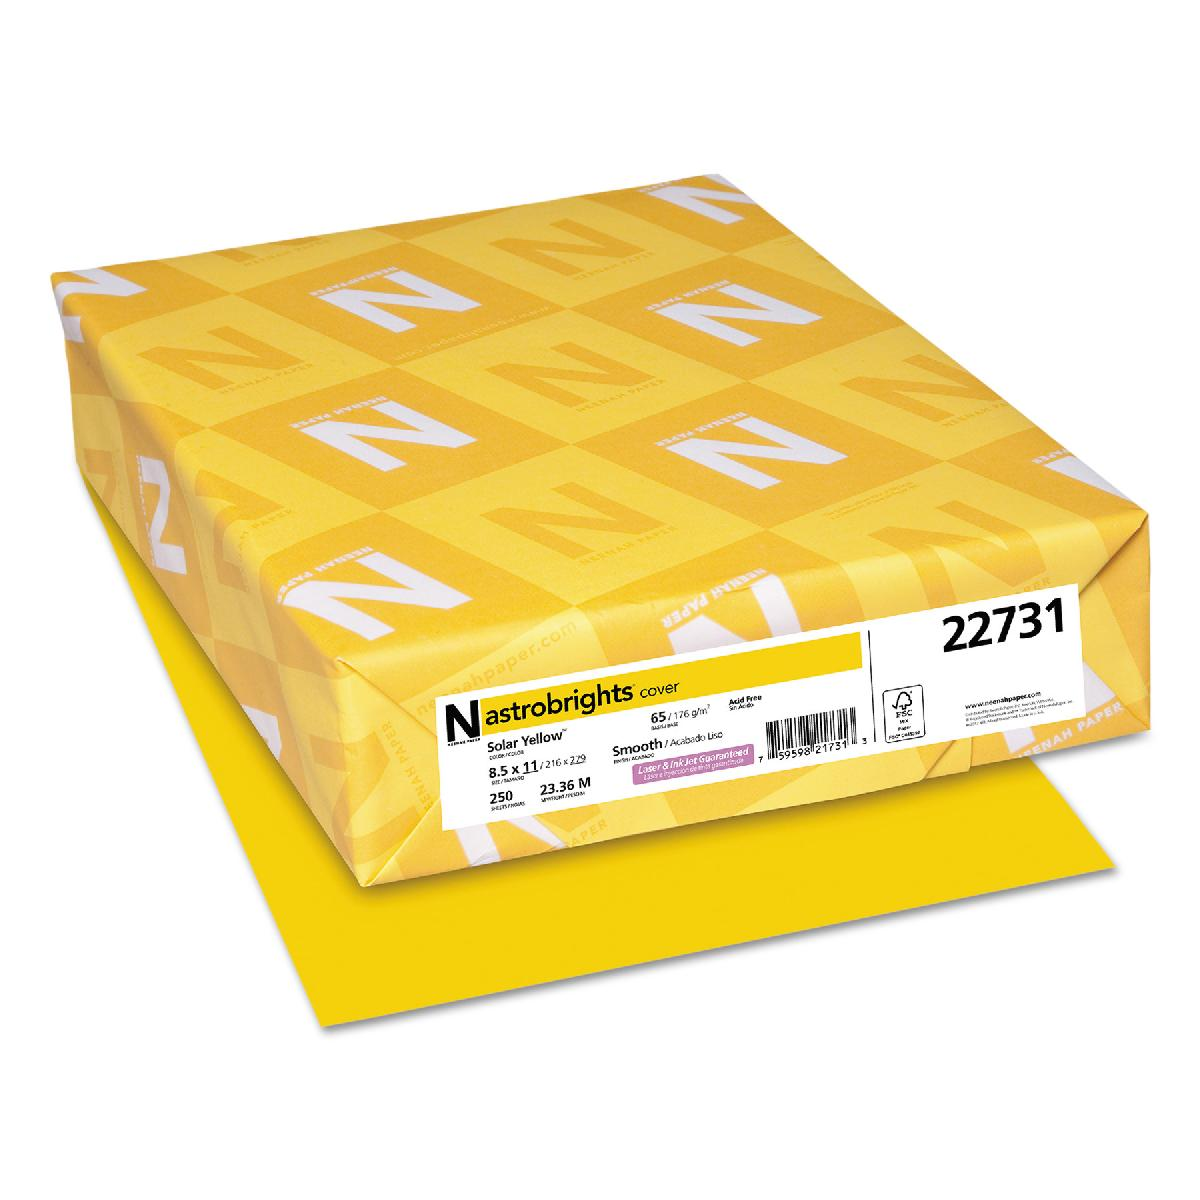 Neenah Paper® Astrobrights Solar Yellow Smooth 65 lb. Cover 8.5x11 in. 250 Sheets